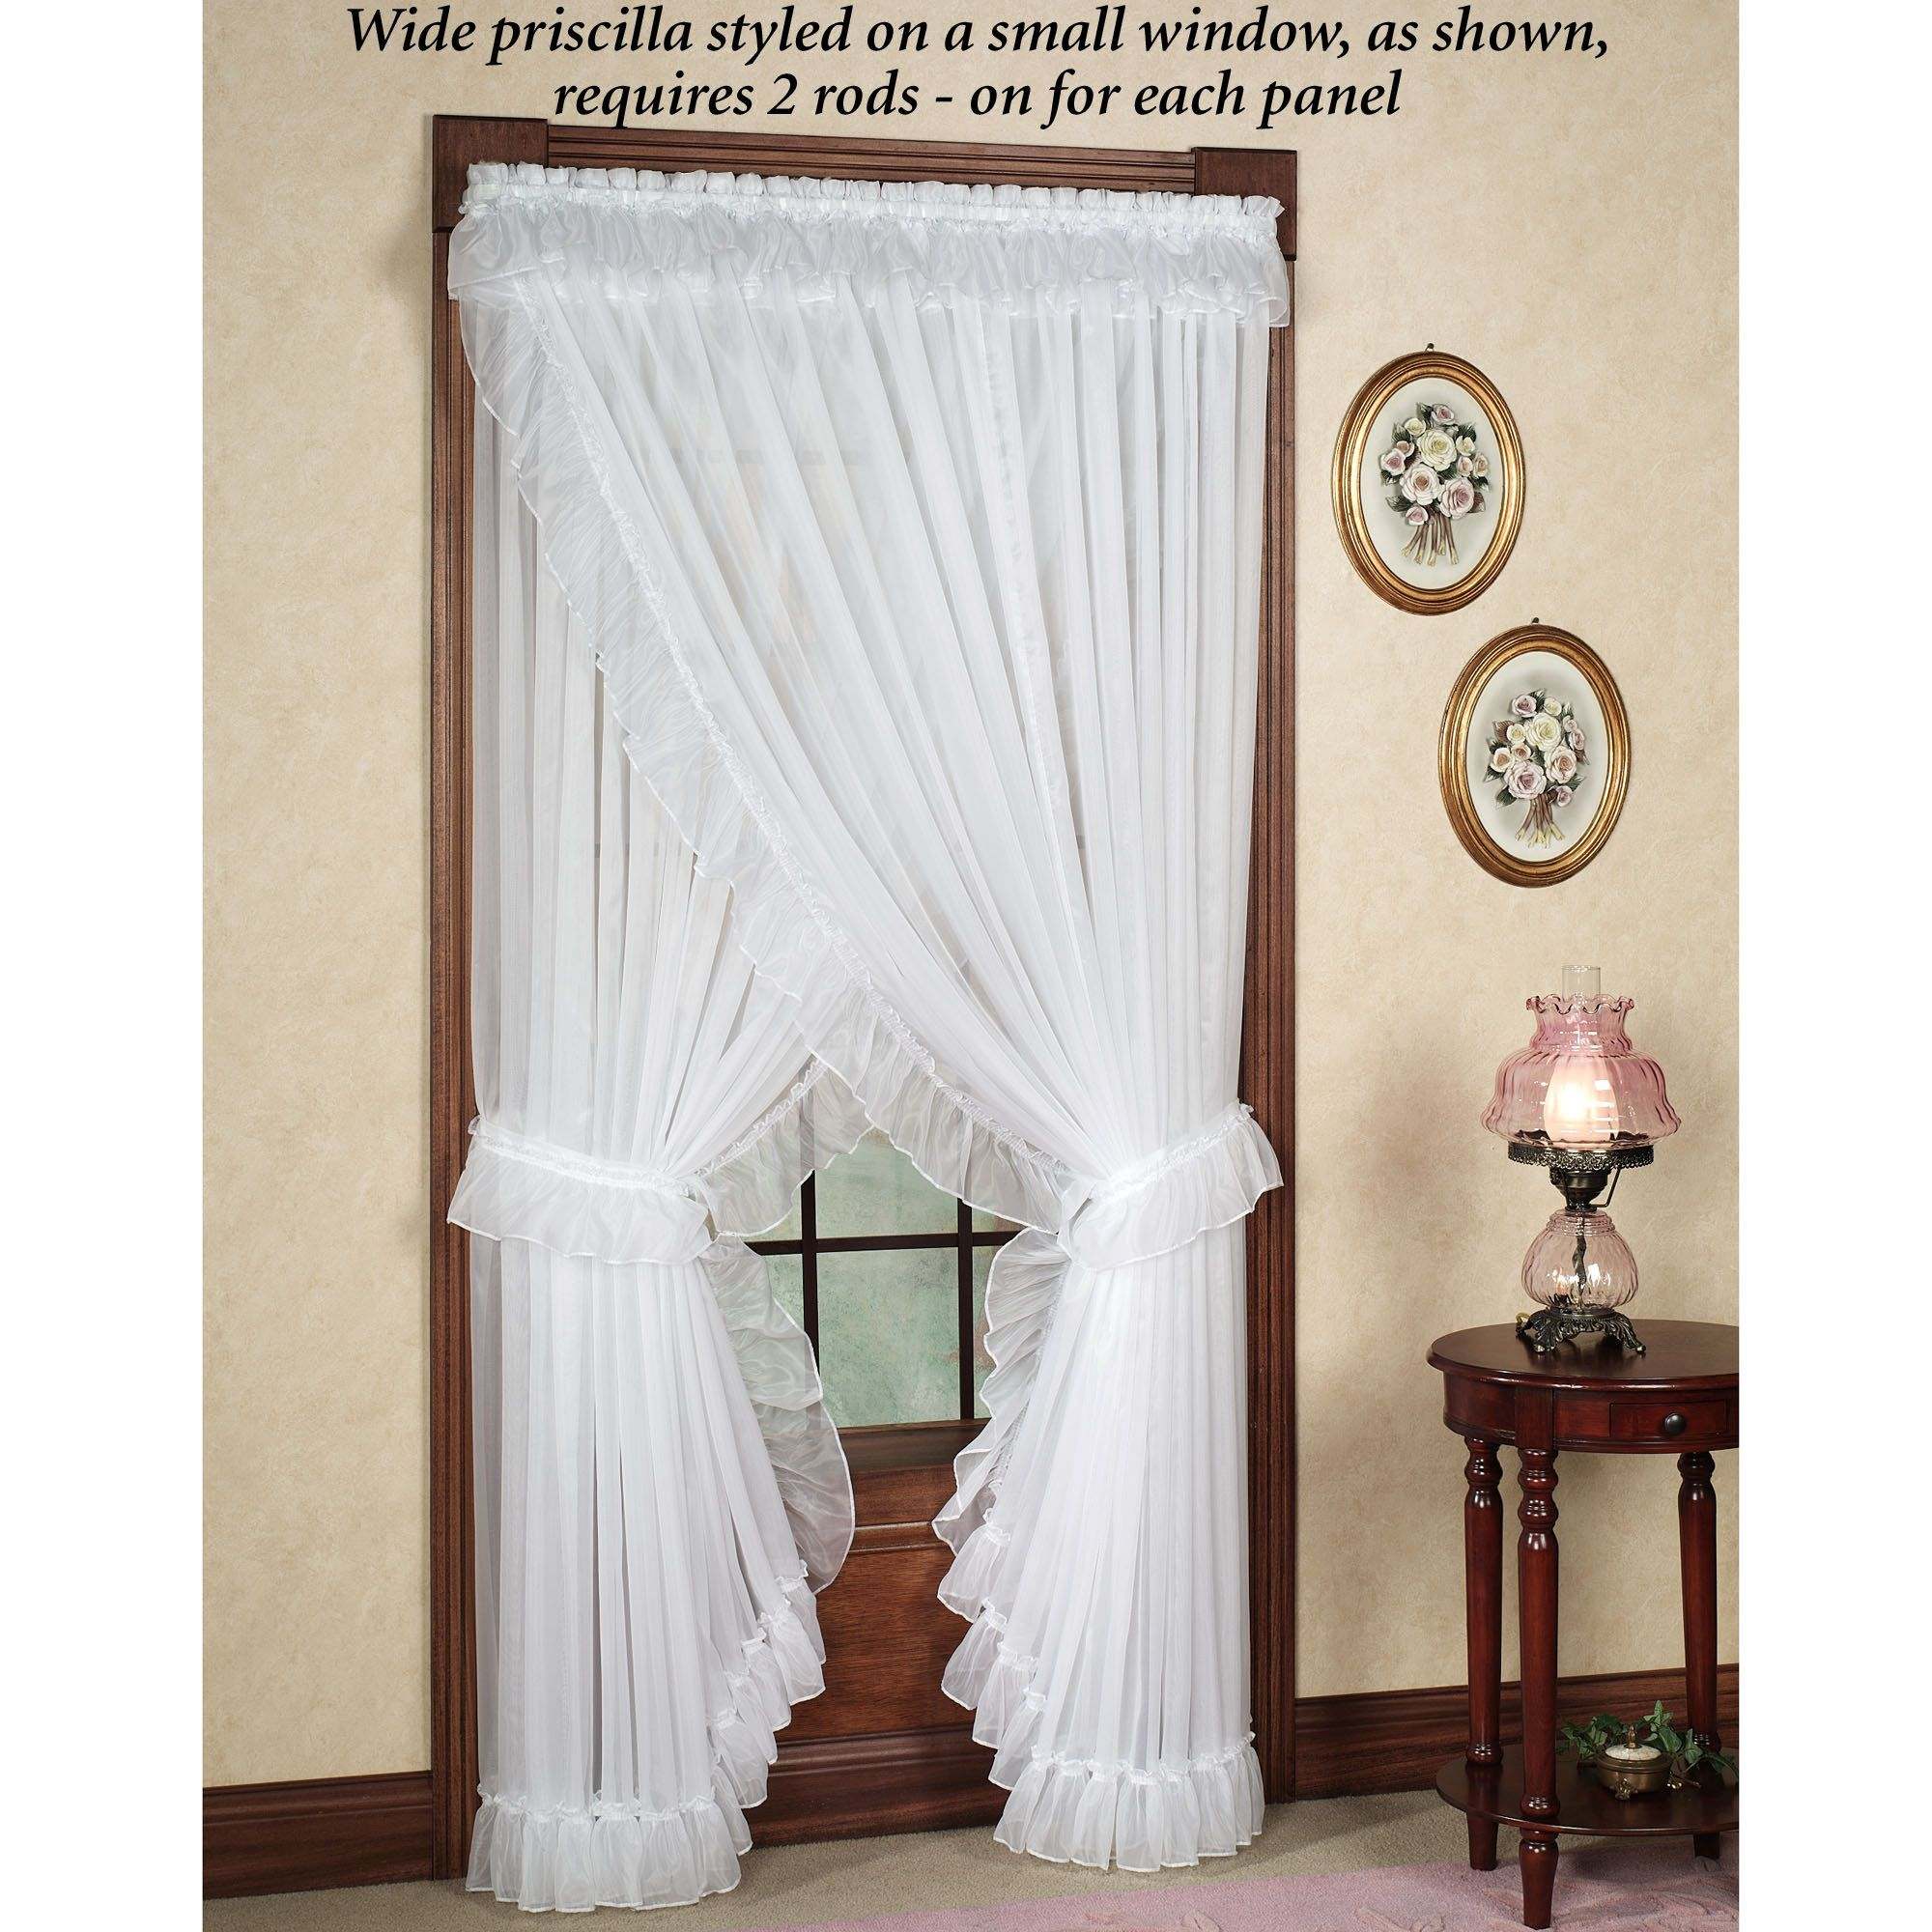 Jessica Ninon Ruffled Priscilla Curtains Priscilla Curtains